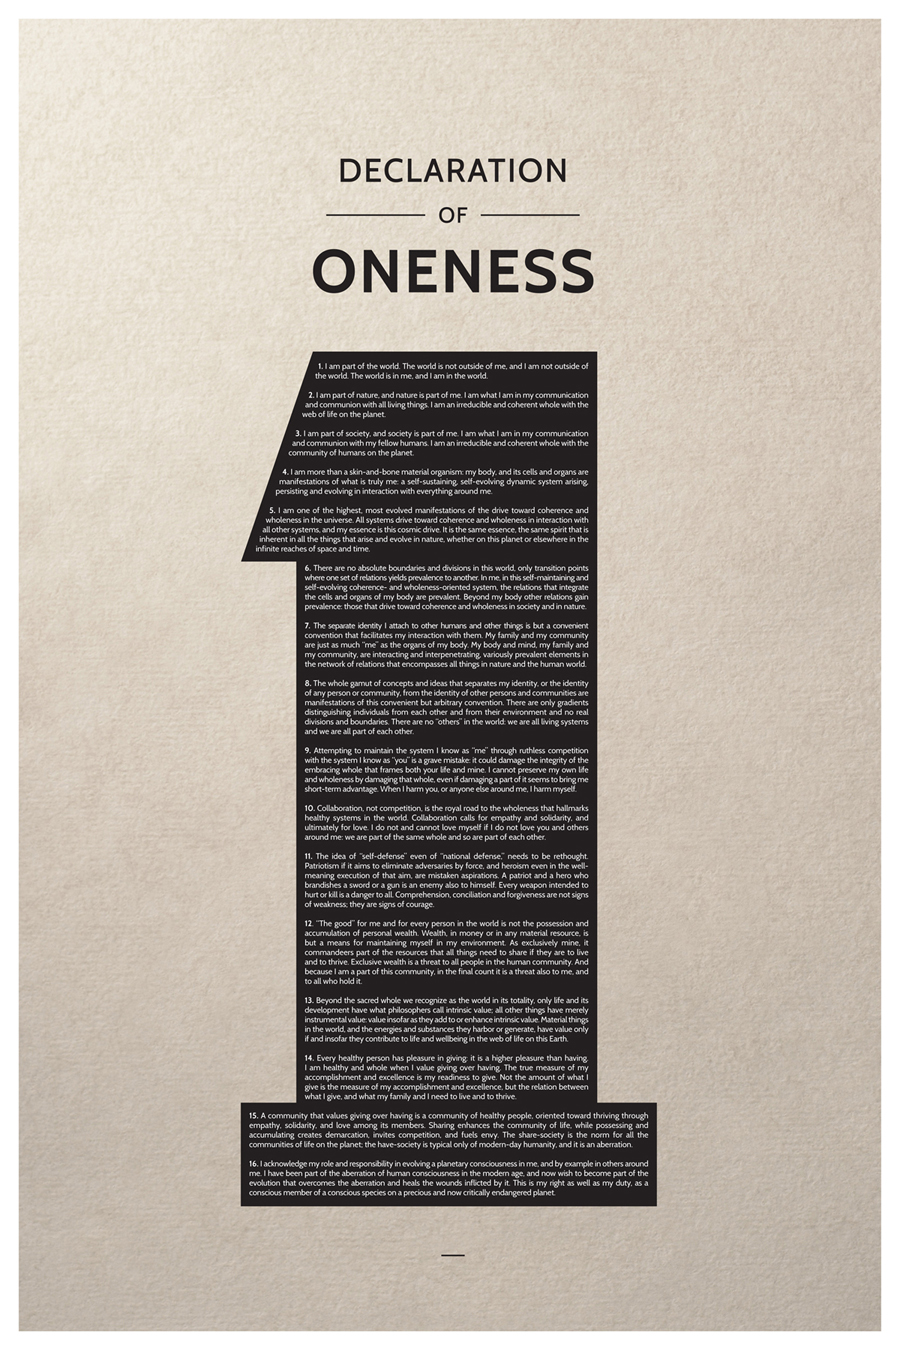 Poster design meaning - Poster Design By Lmcf For Oneness Poster Design 1614817